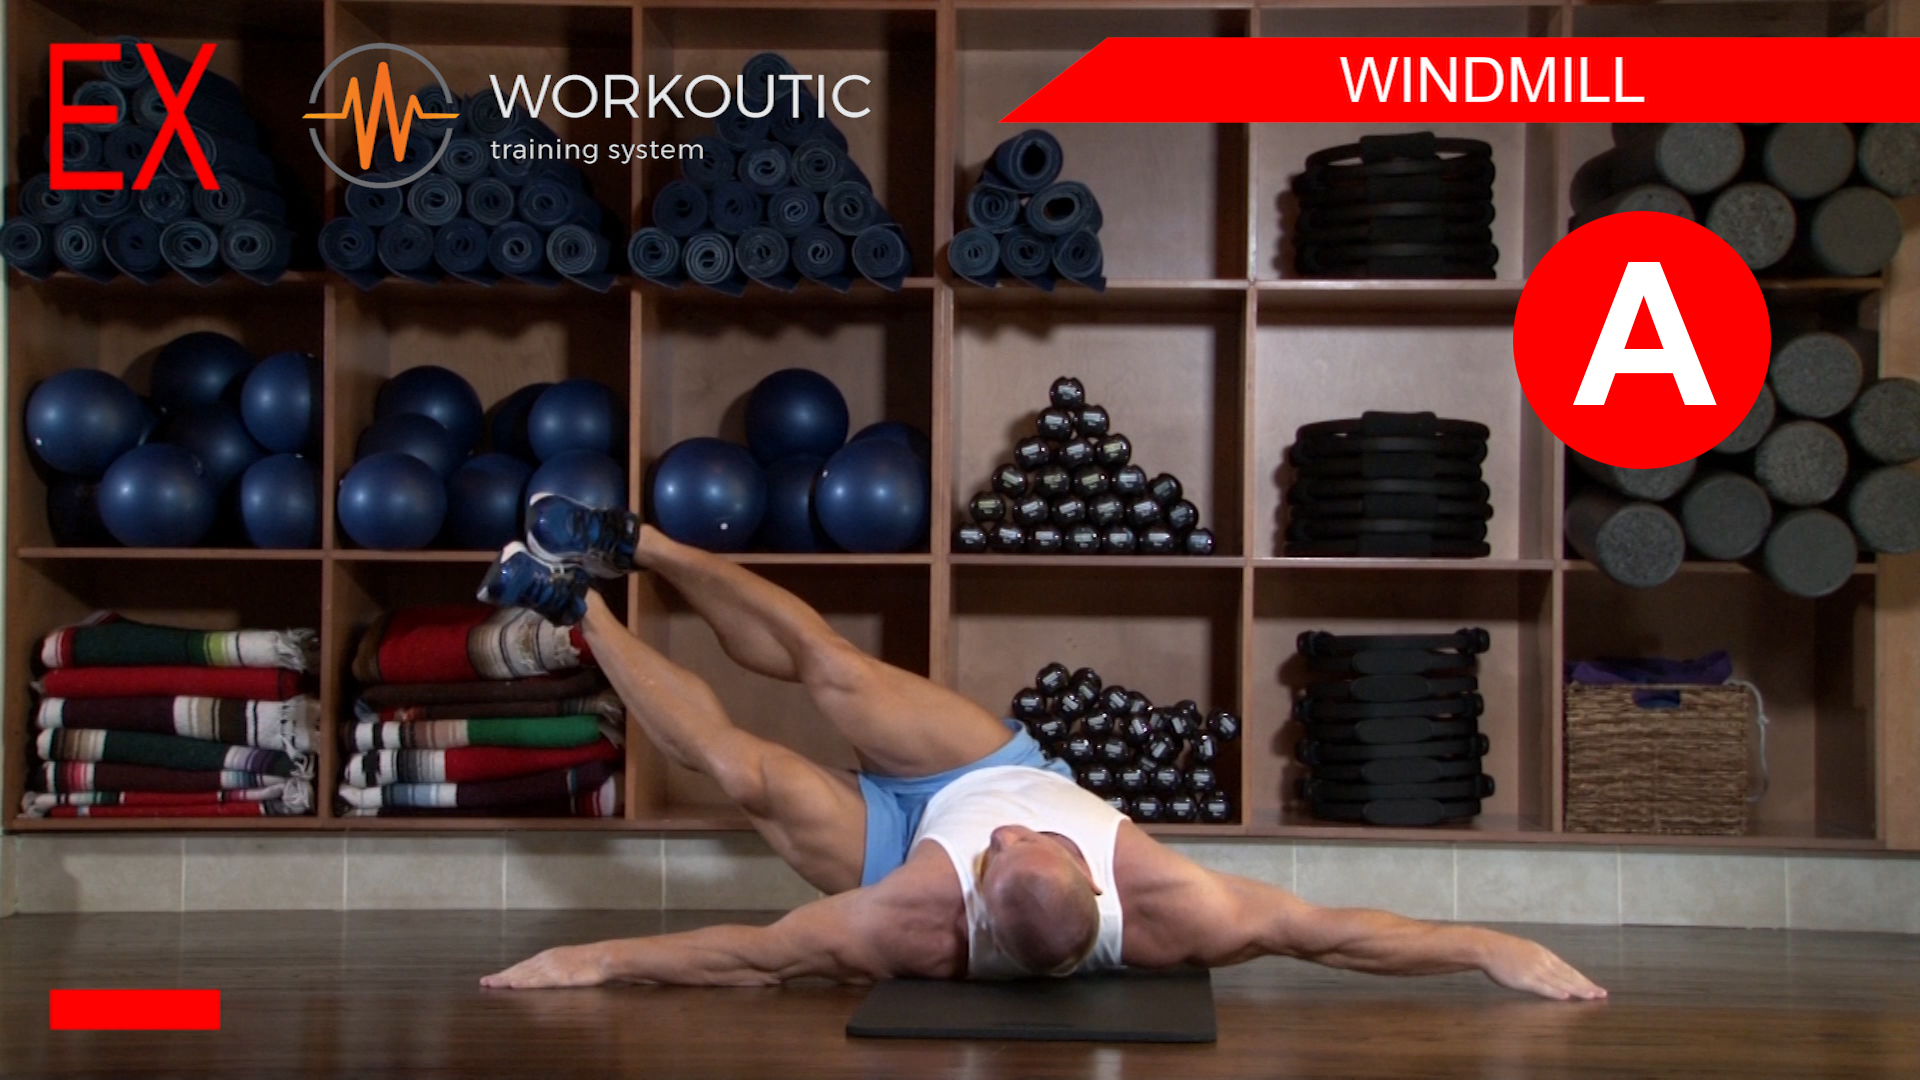 Abs Exercises - Workutic - 6 pack special - Windmill Inhale